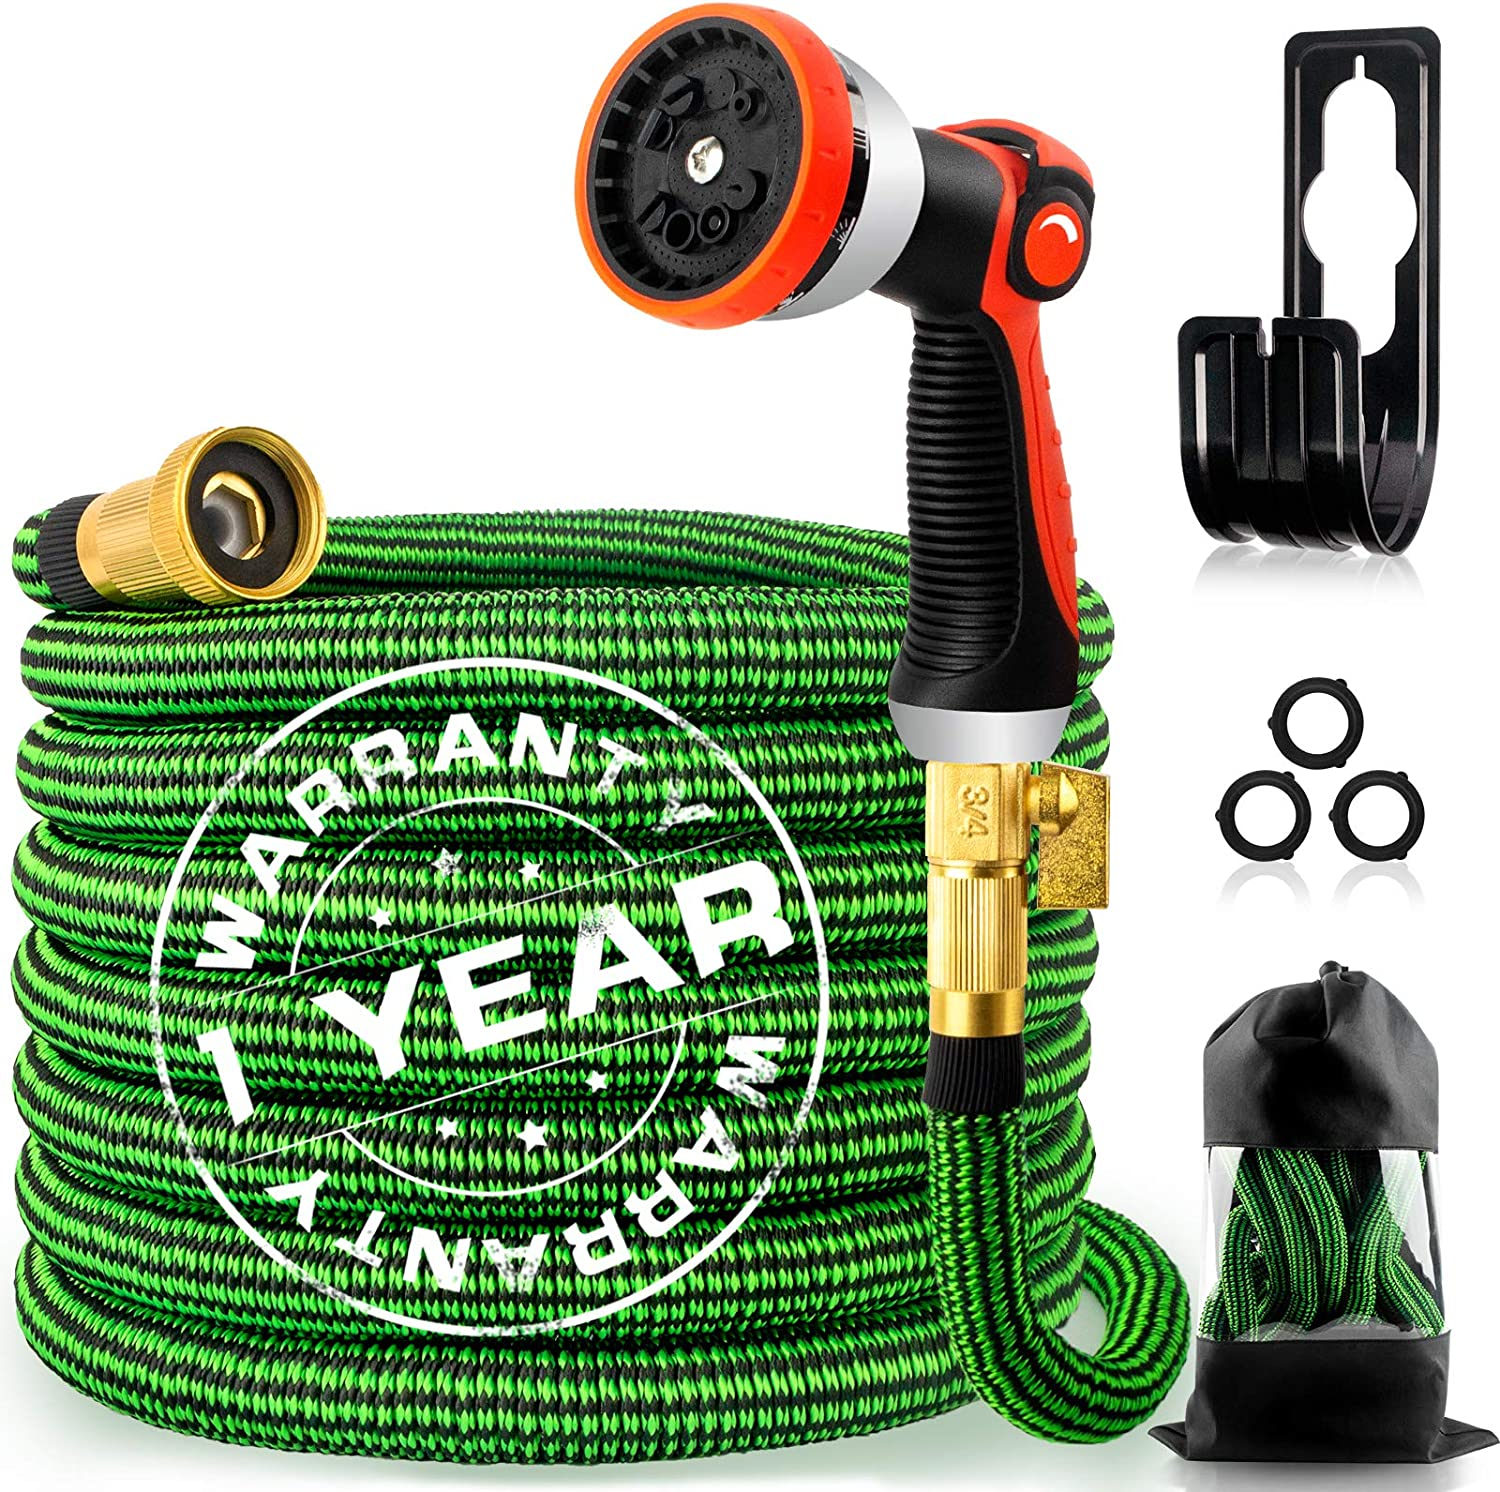 30ft Expandable Garden Hose, Flexible Water Hose with 10 Function Nozzle, 4-Layer Latex Core and 3/4